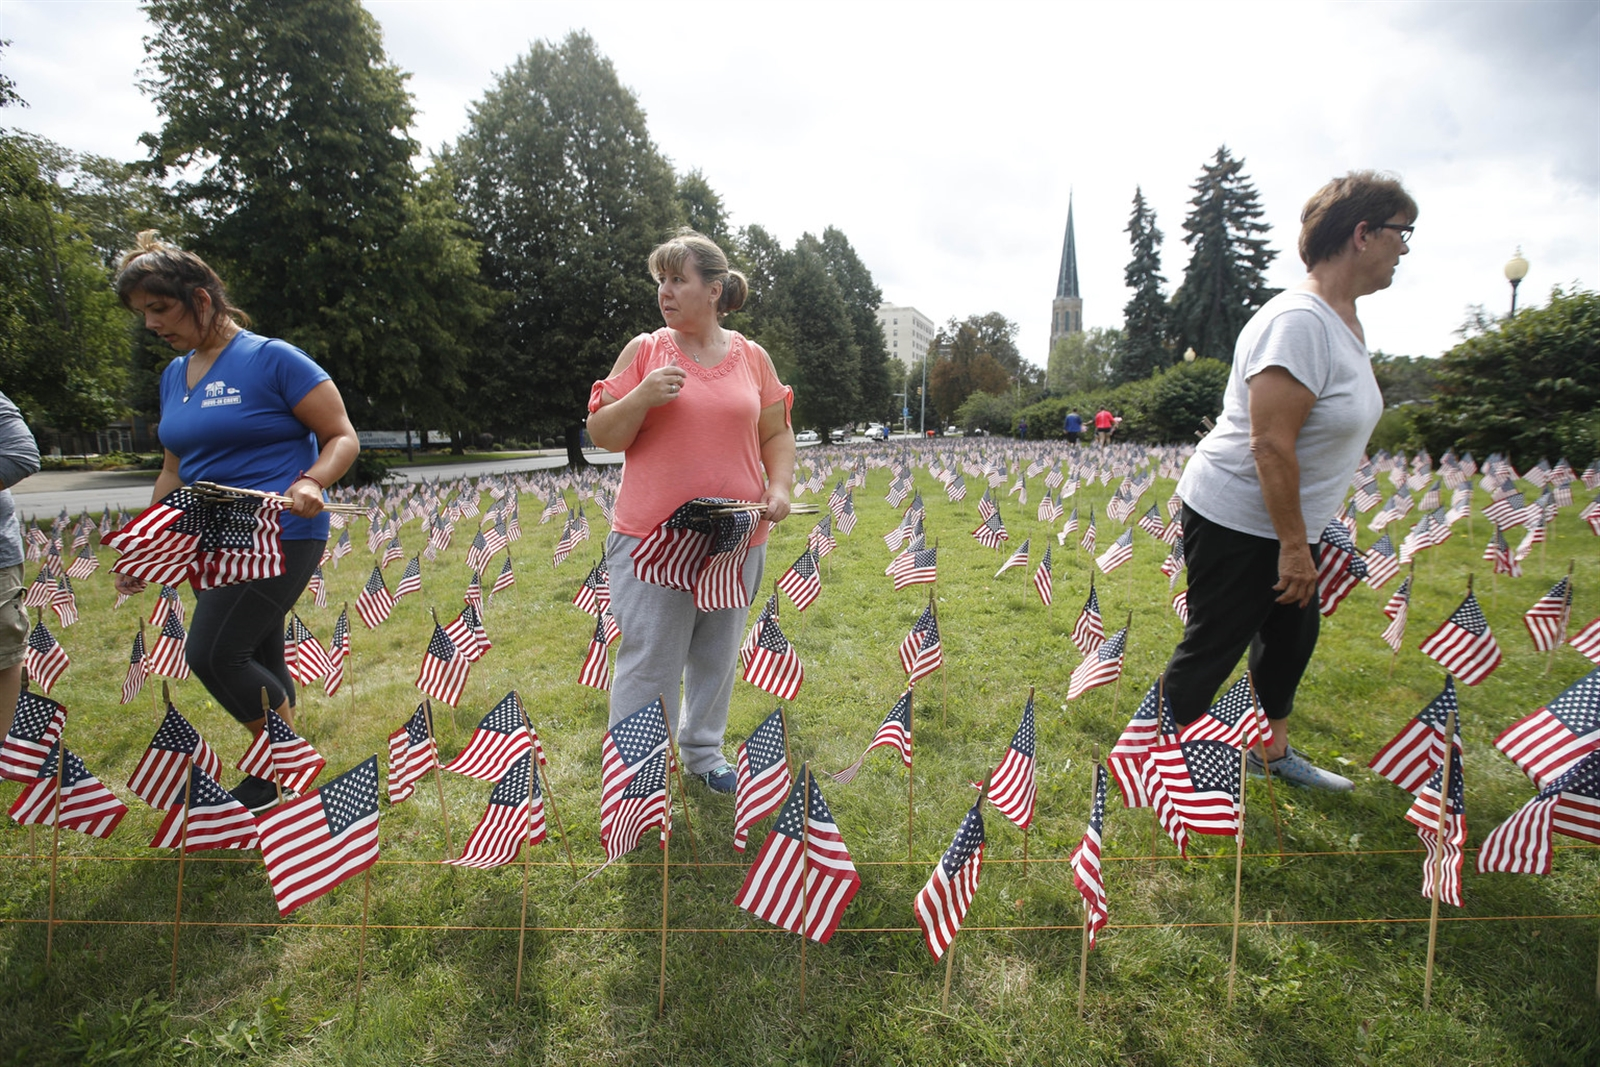 WNY Families of 9/11 set up 2996 flags representing each victim of the September 11 attack.  26 of those had local connections.